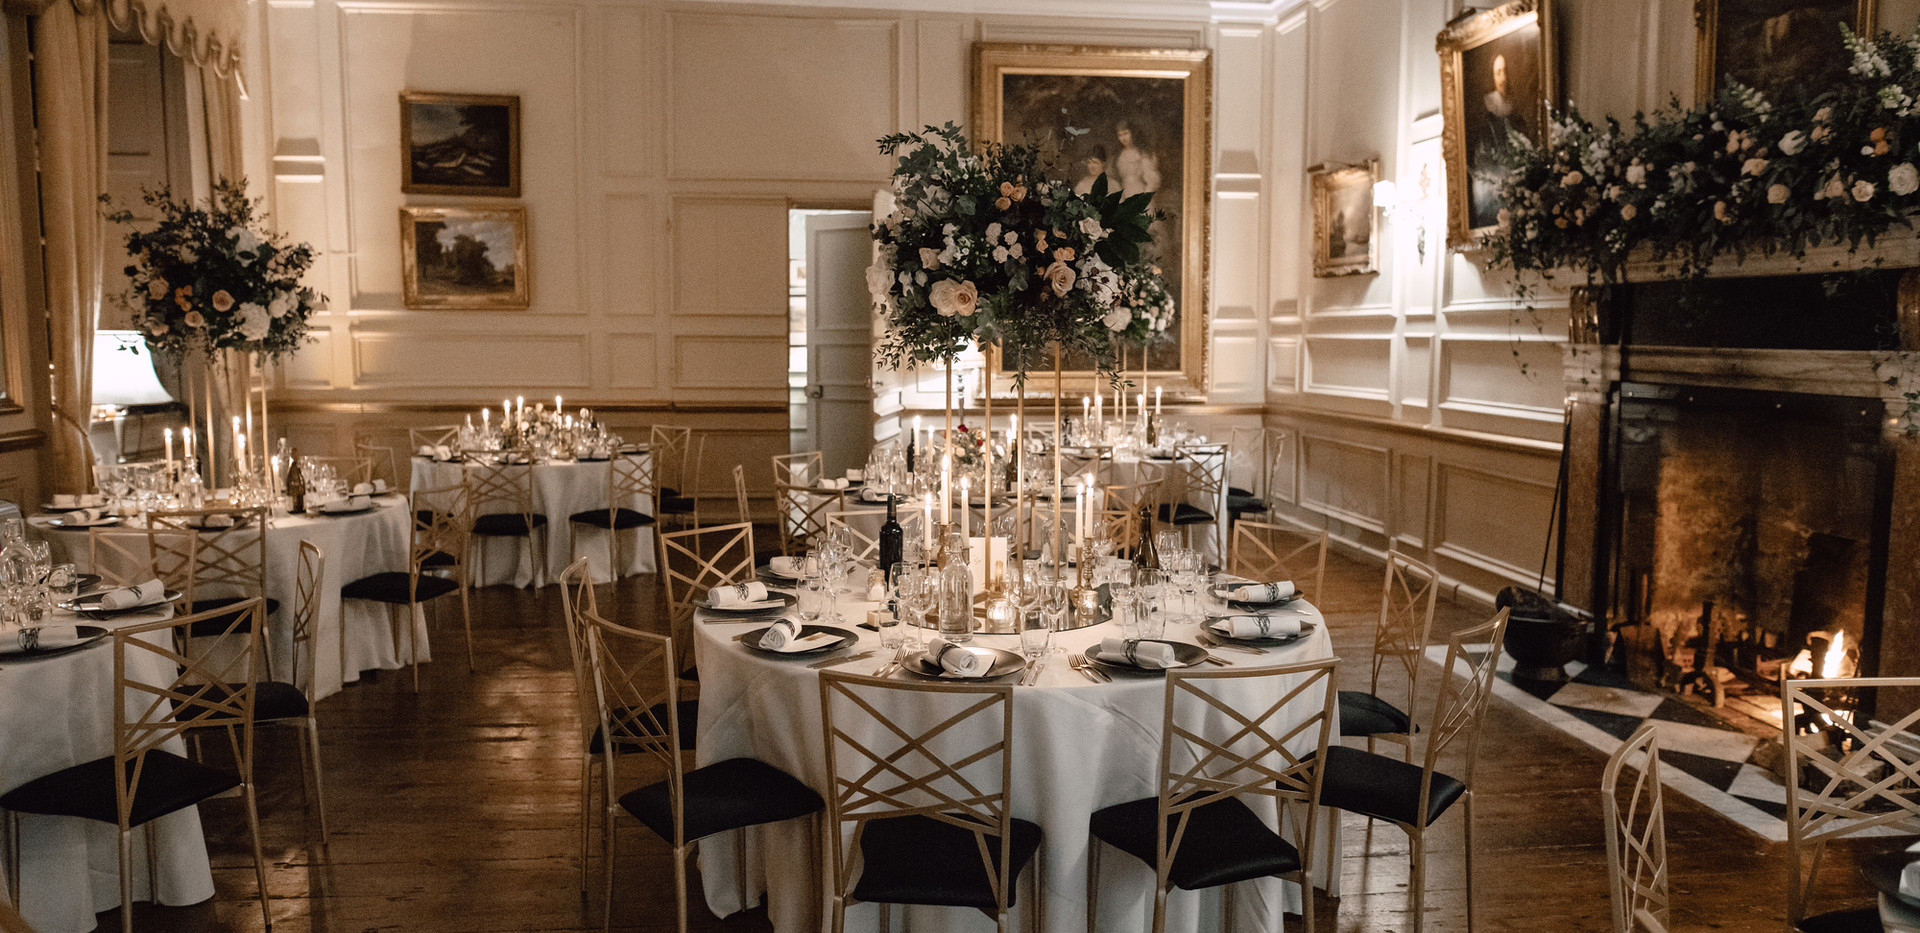 The Salon is an elegant and beautiful dining room